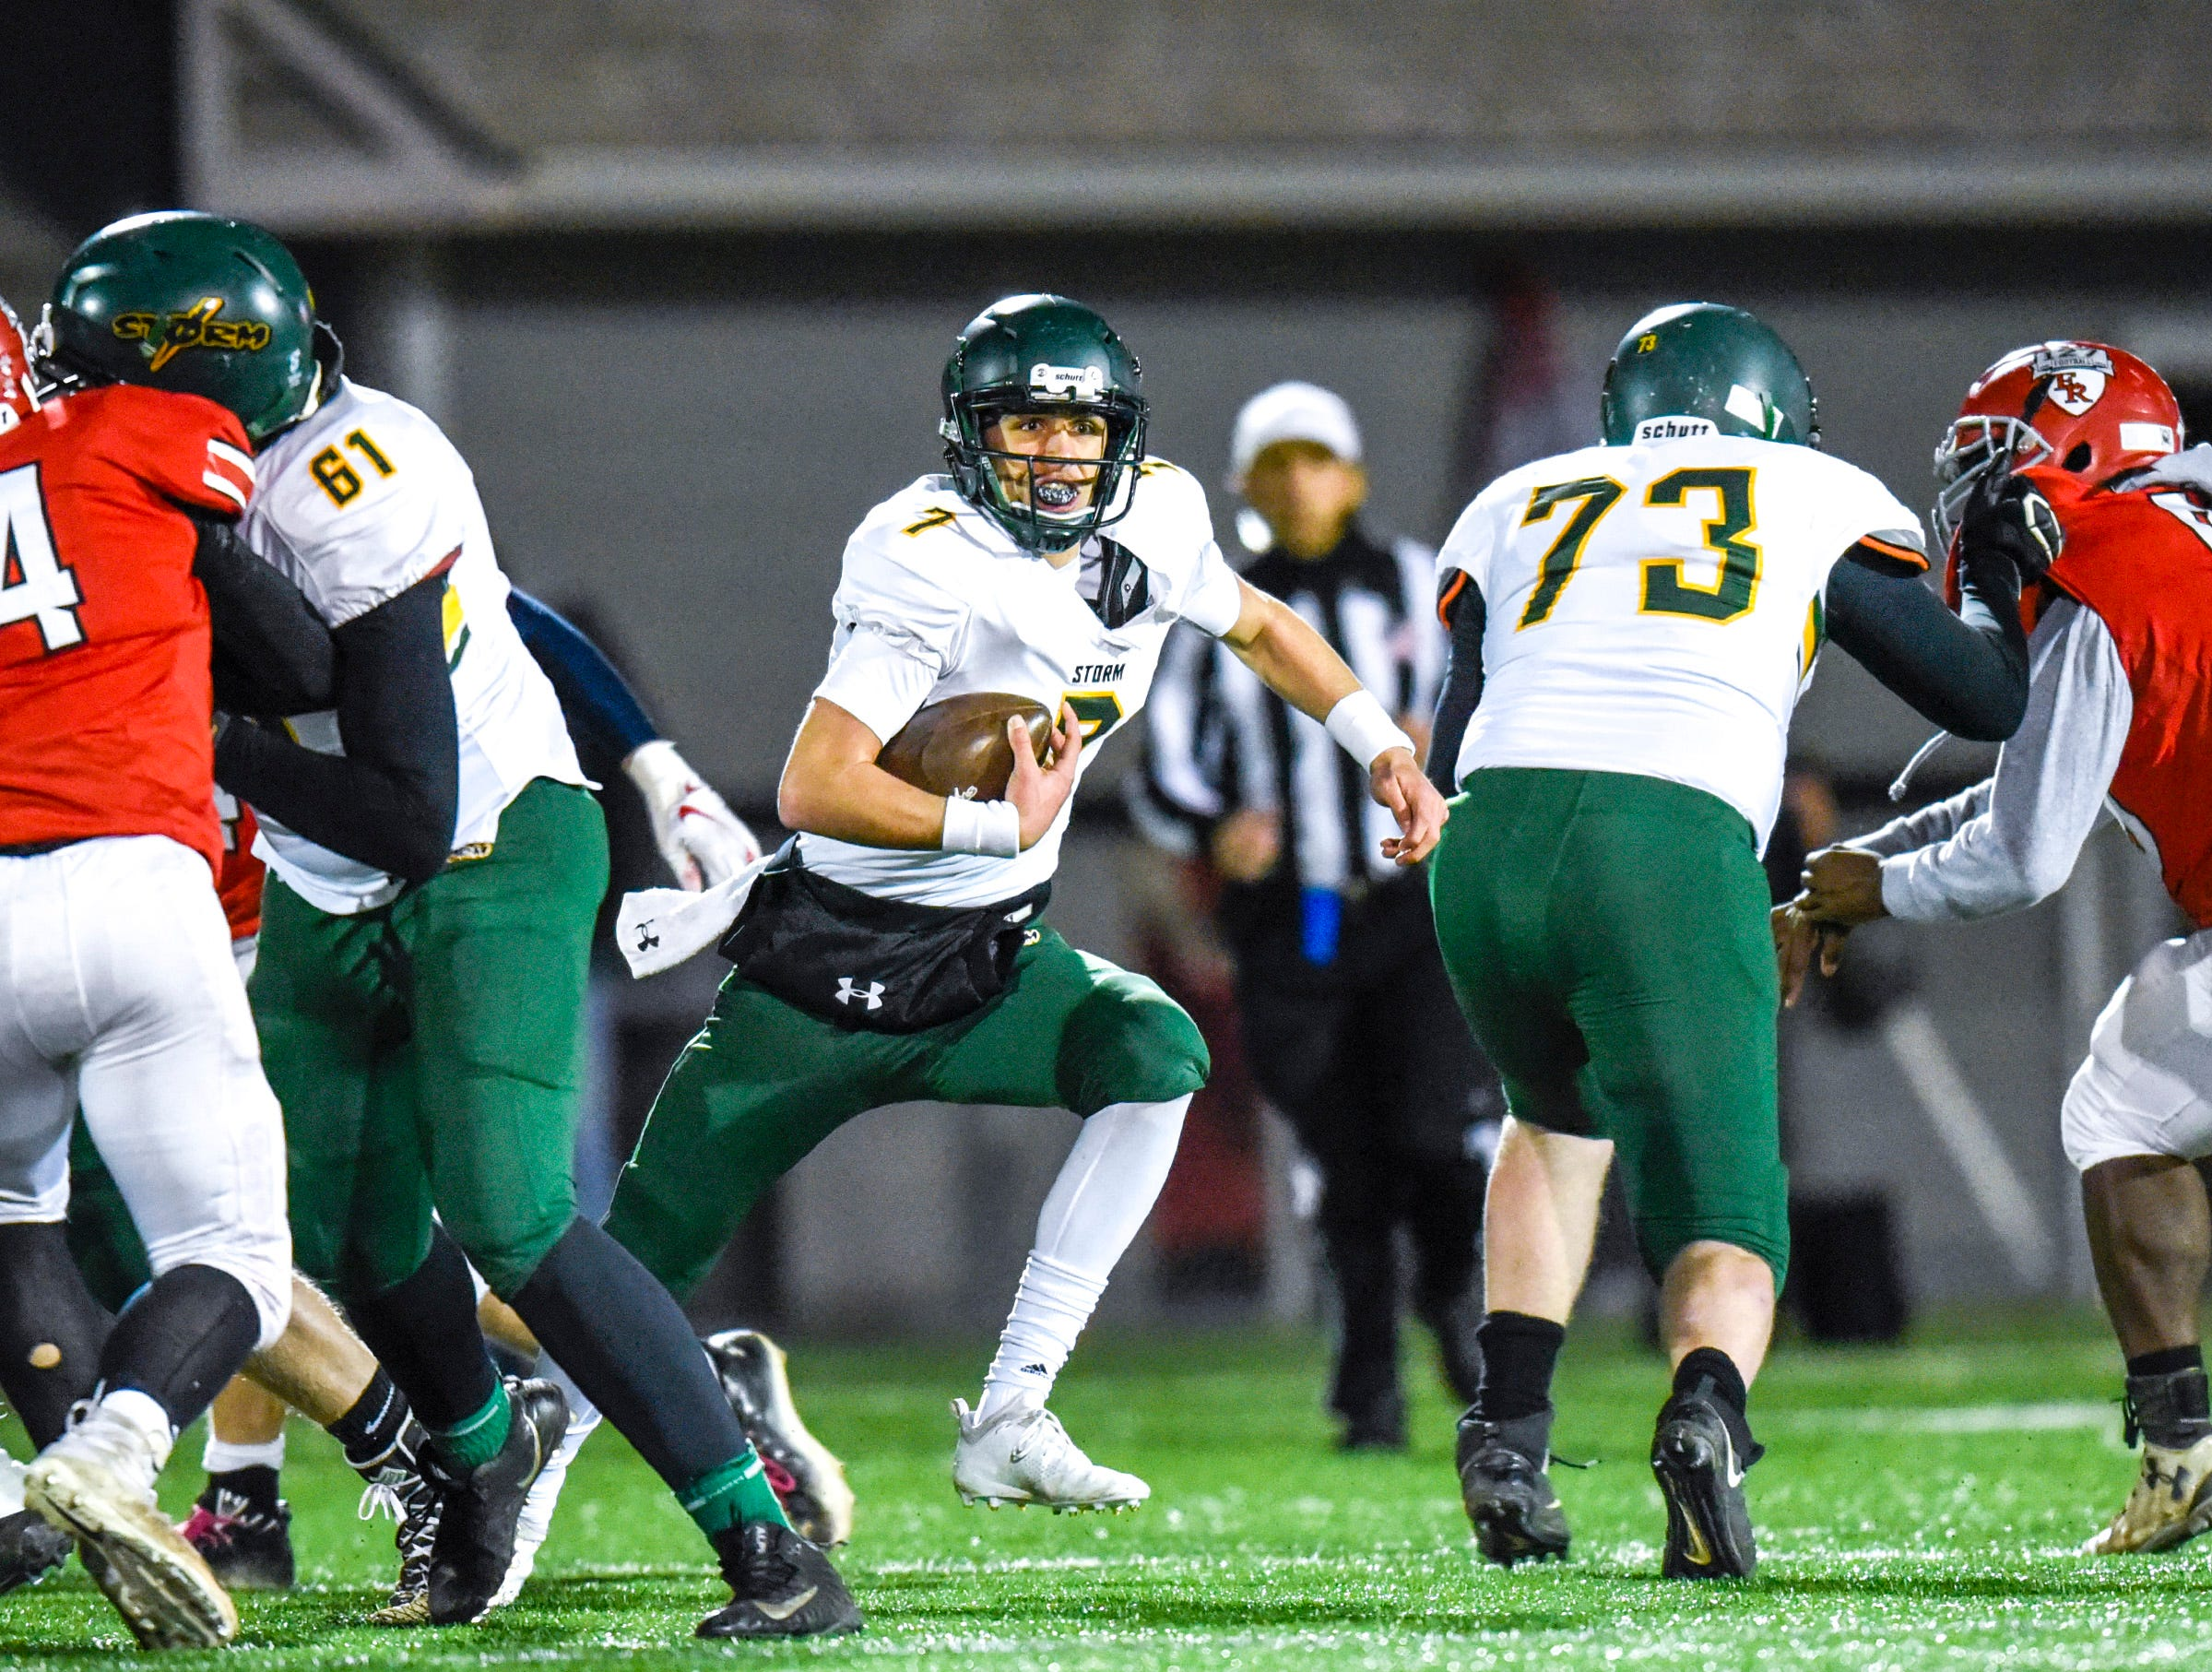 Sauk Rapids quarterback Cade Milton-Baumgardner runs with ball against Elk River during the first half Friday, Nov. 2, in the Section 6-5A championship at Buffalo High School.